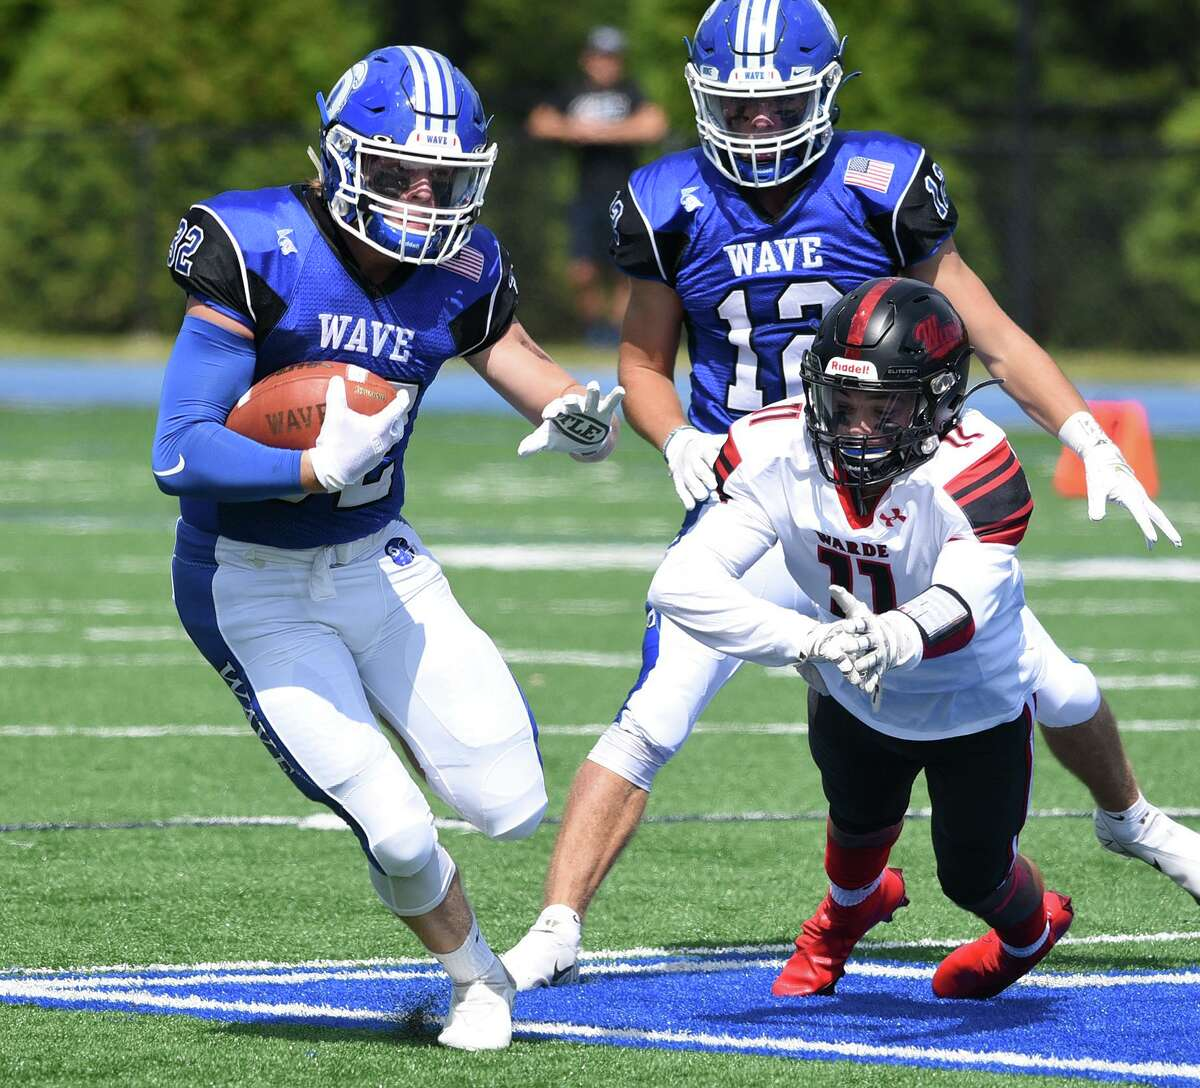 Darien's Tighe Cummiskey (32) runs with the ball as Warde's Lucas Coleman (11) dives to slow him down during a football game at Darien High School on Sat., Sept. 11, 2021.